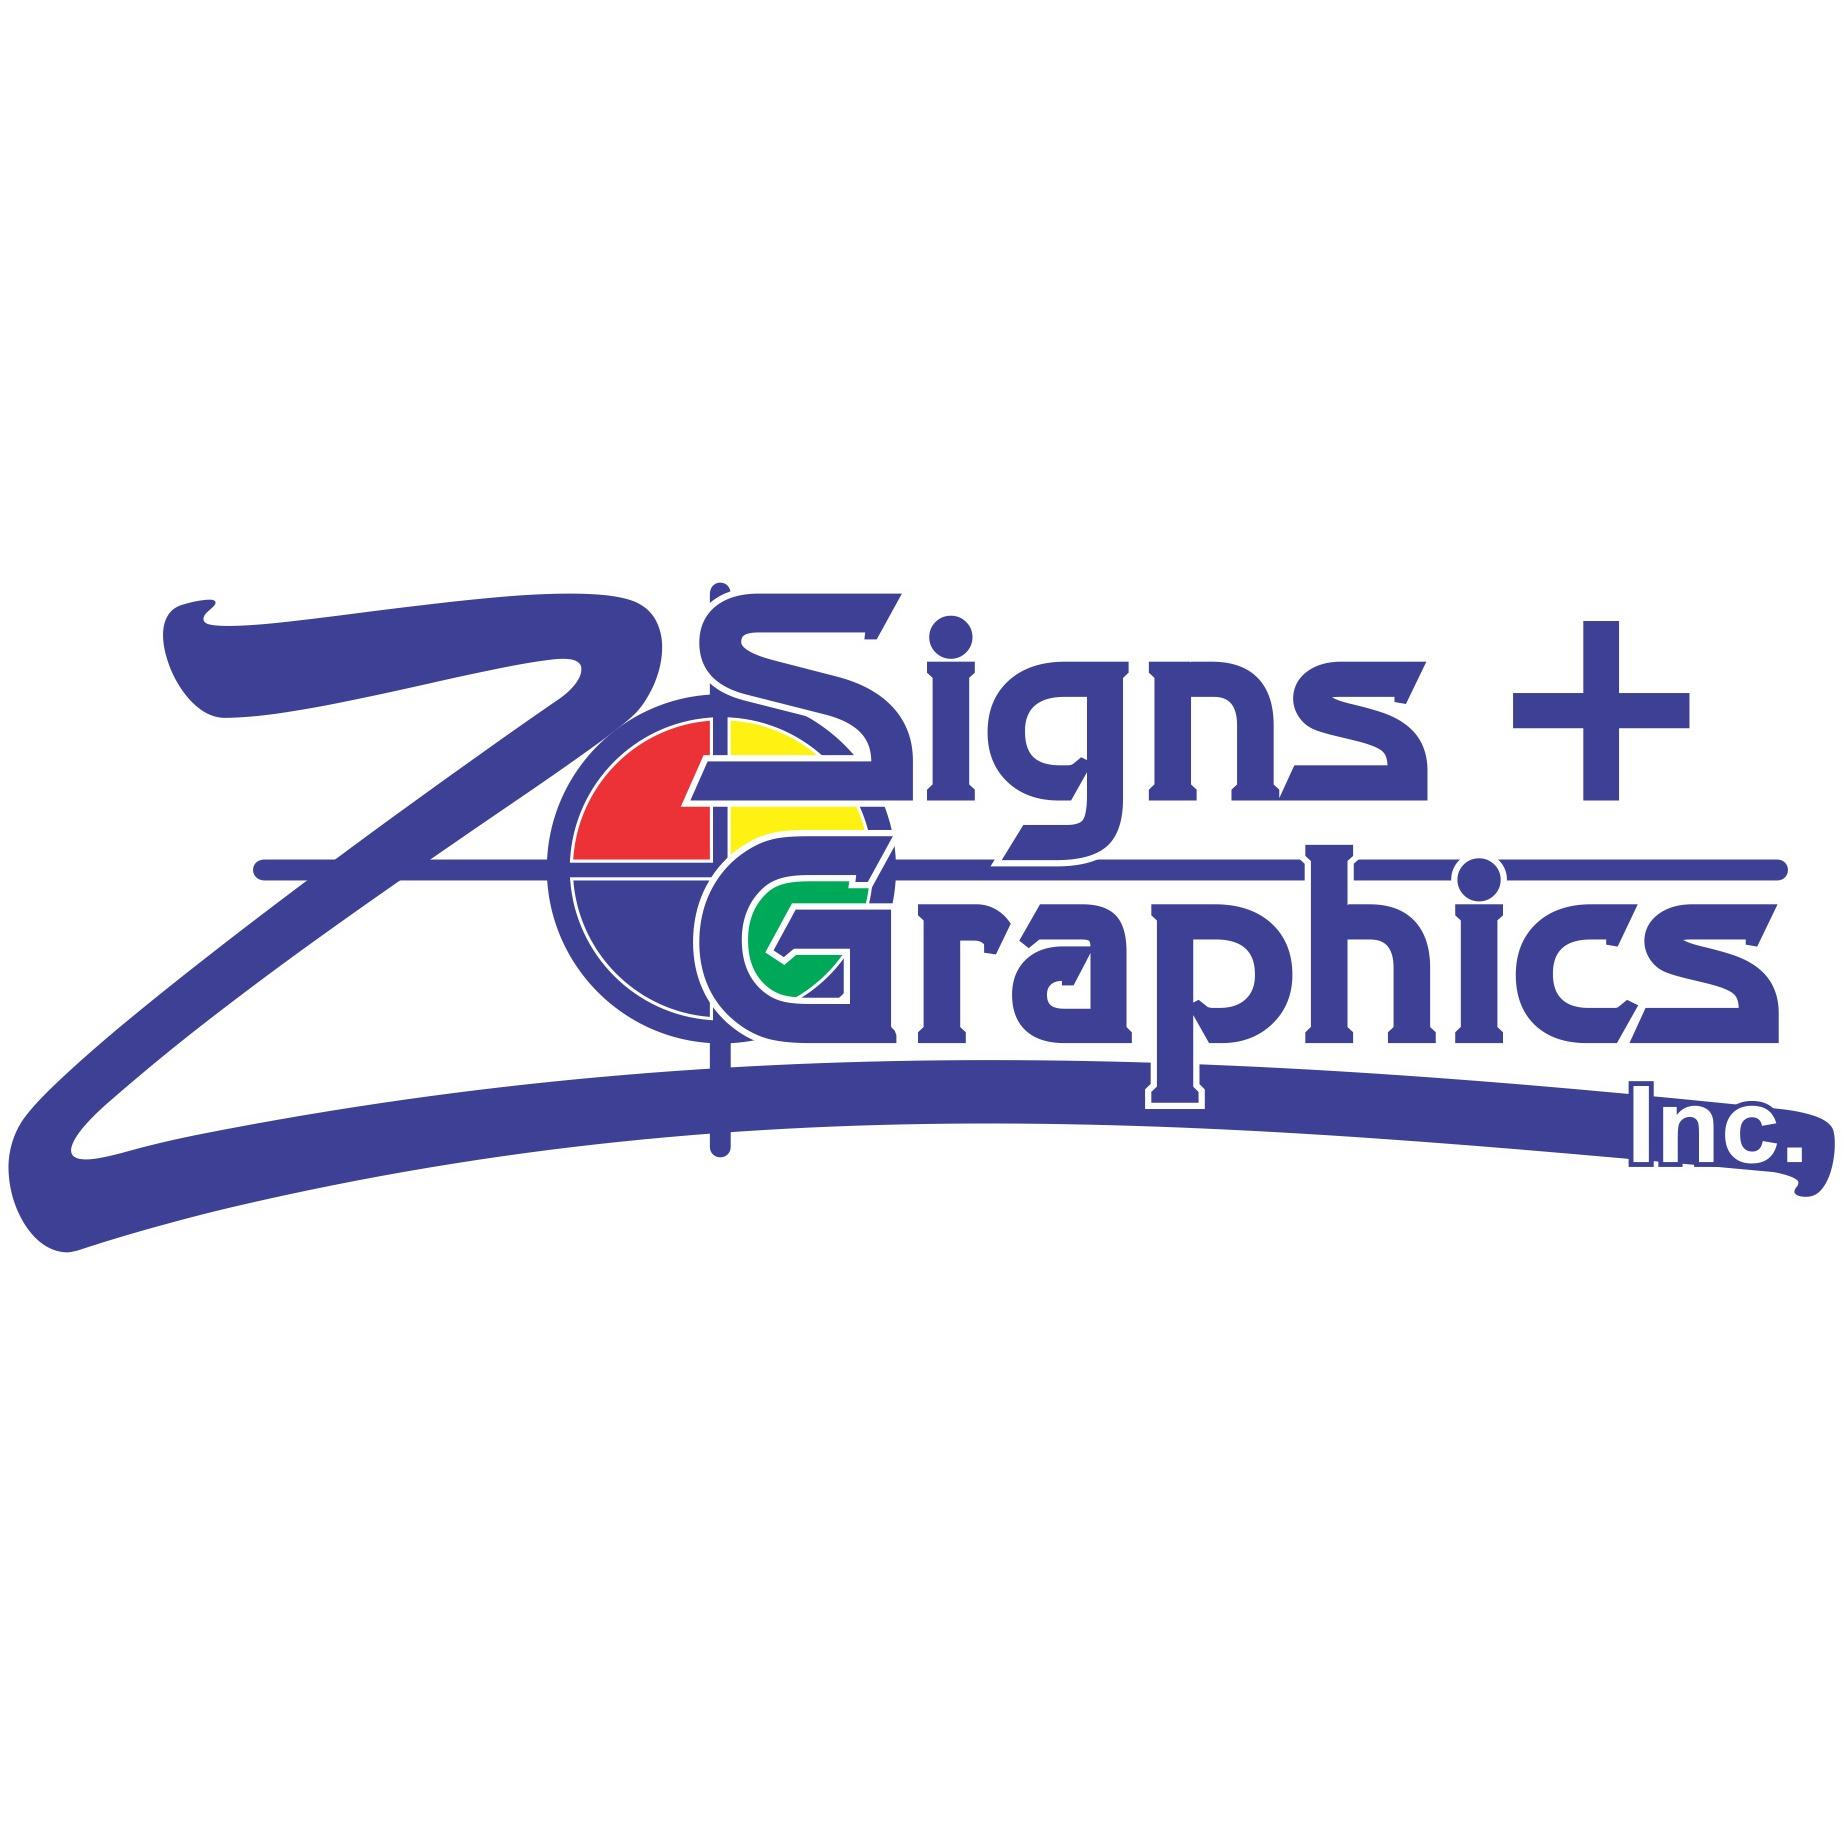 Z Signs & Graphics, Inc.